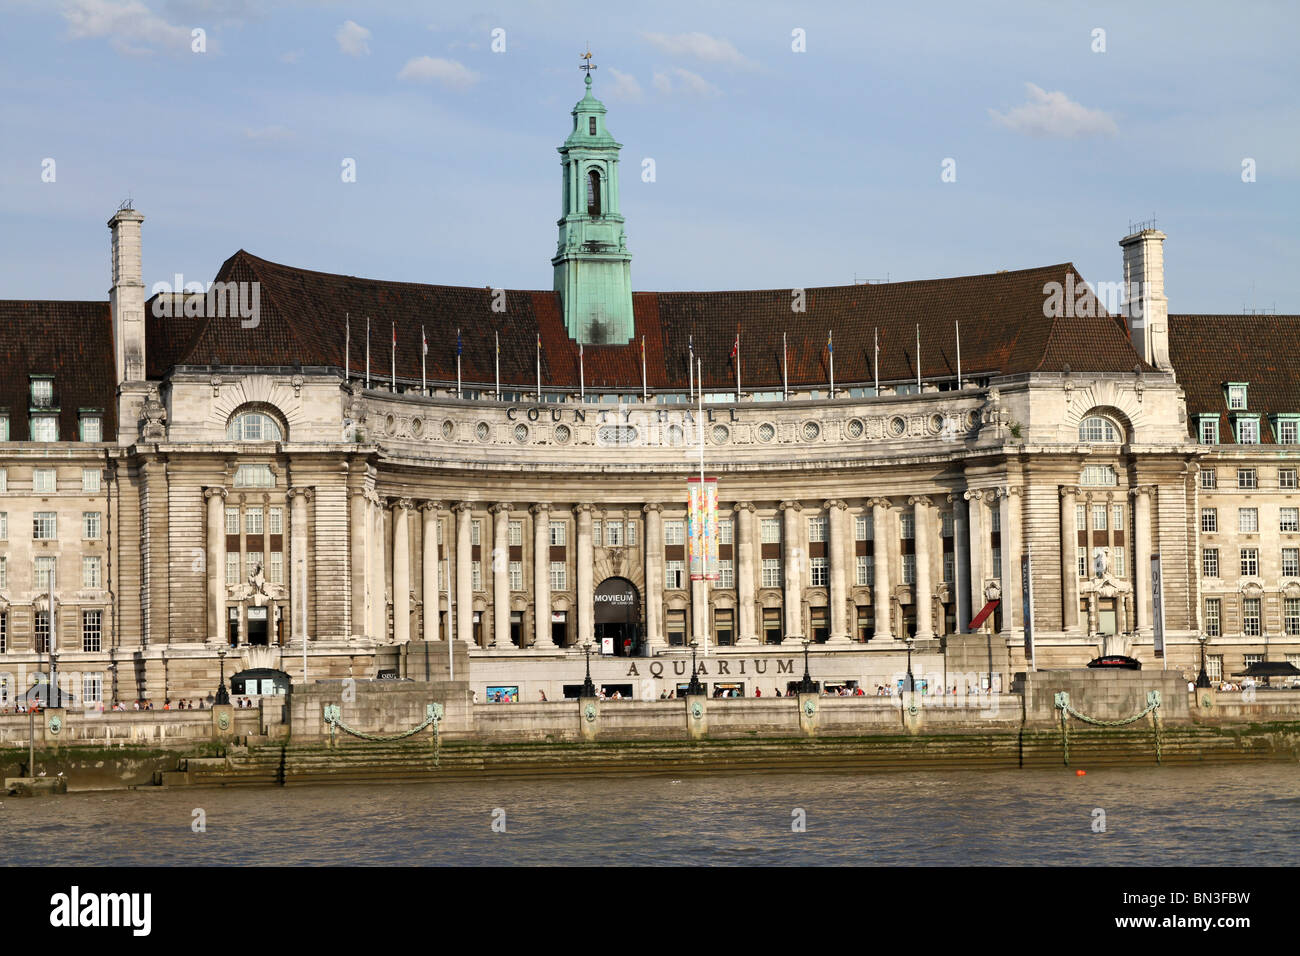 The old County Hall building and London Aquarium in London, England - Stock Image